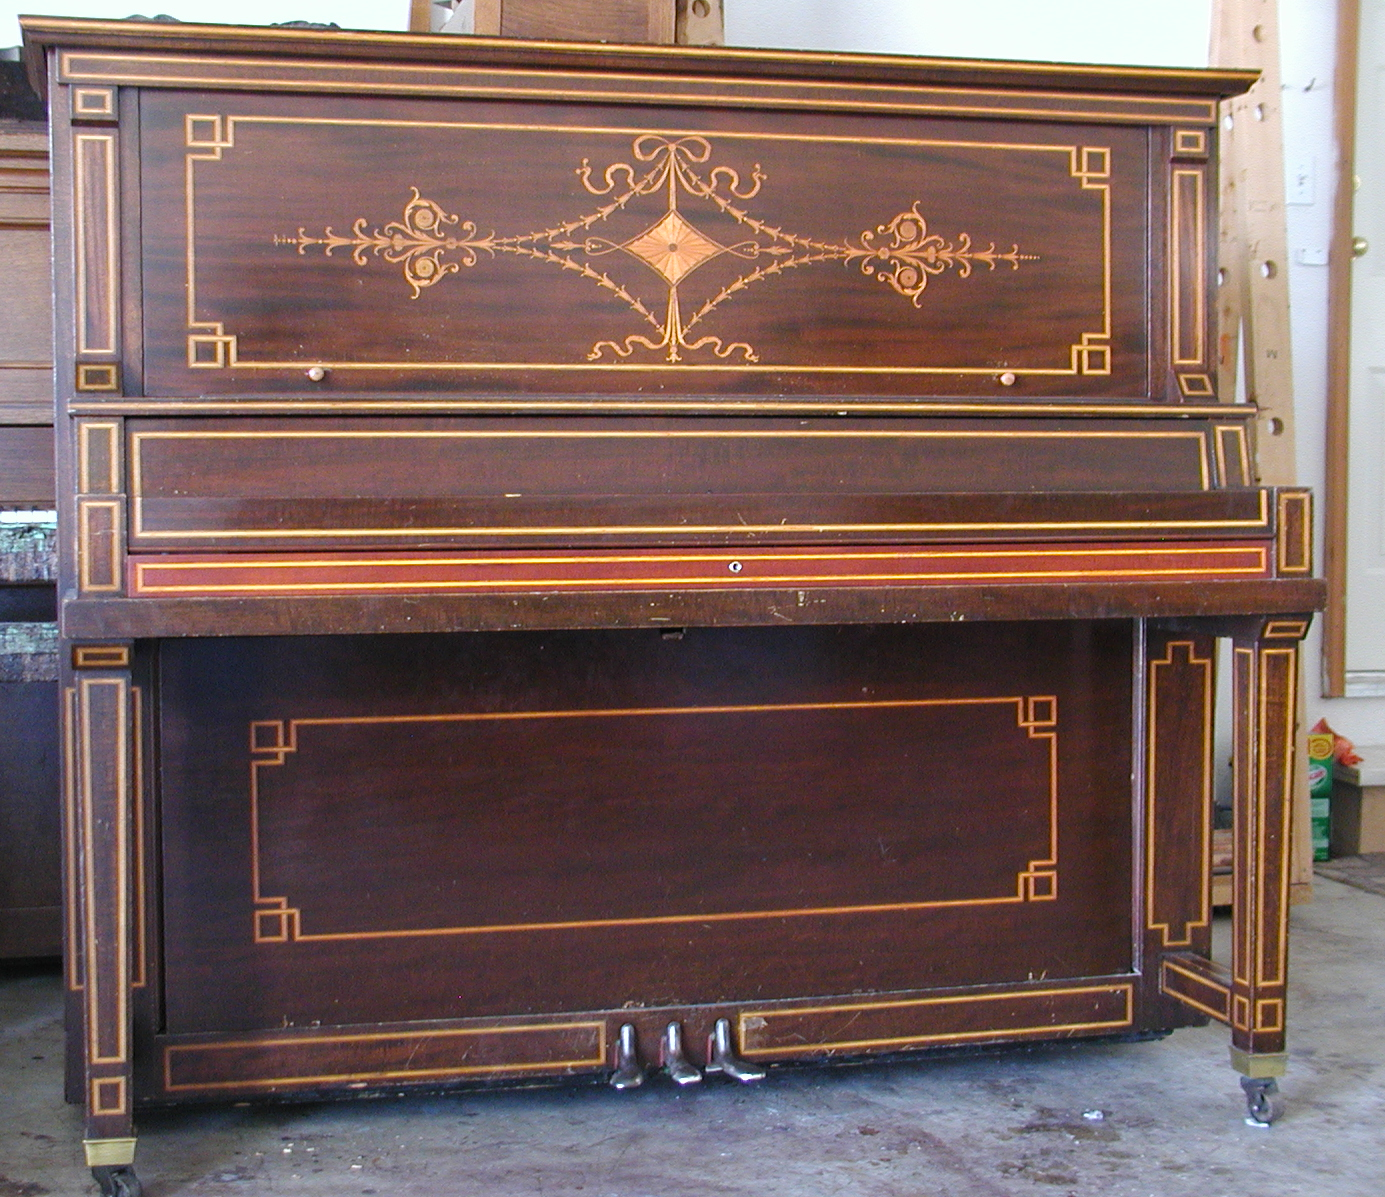 Williams Piano before restoration